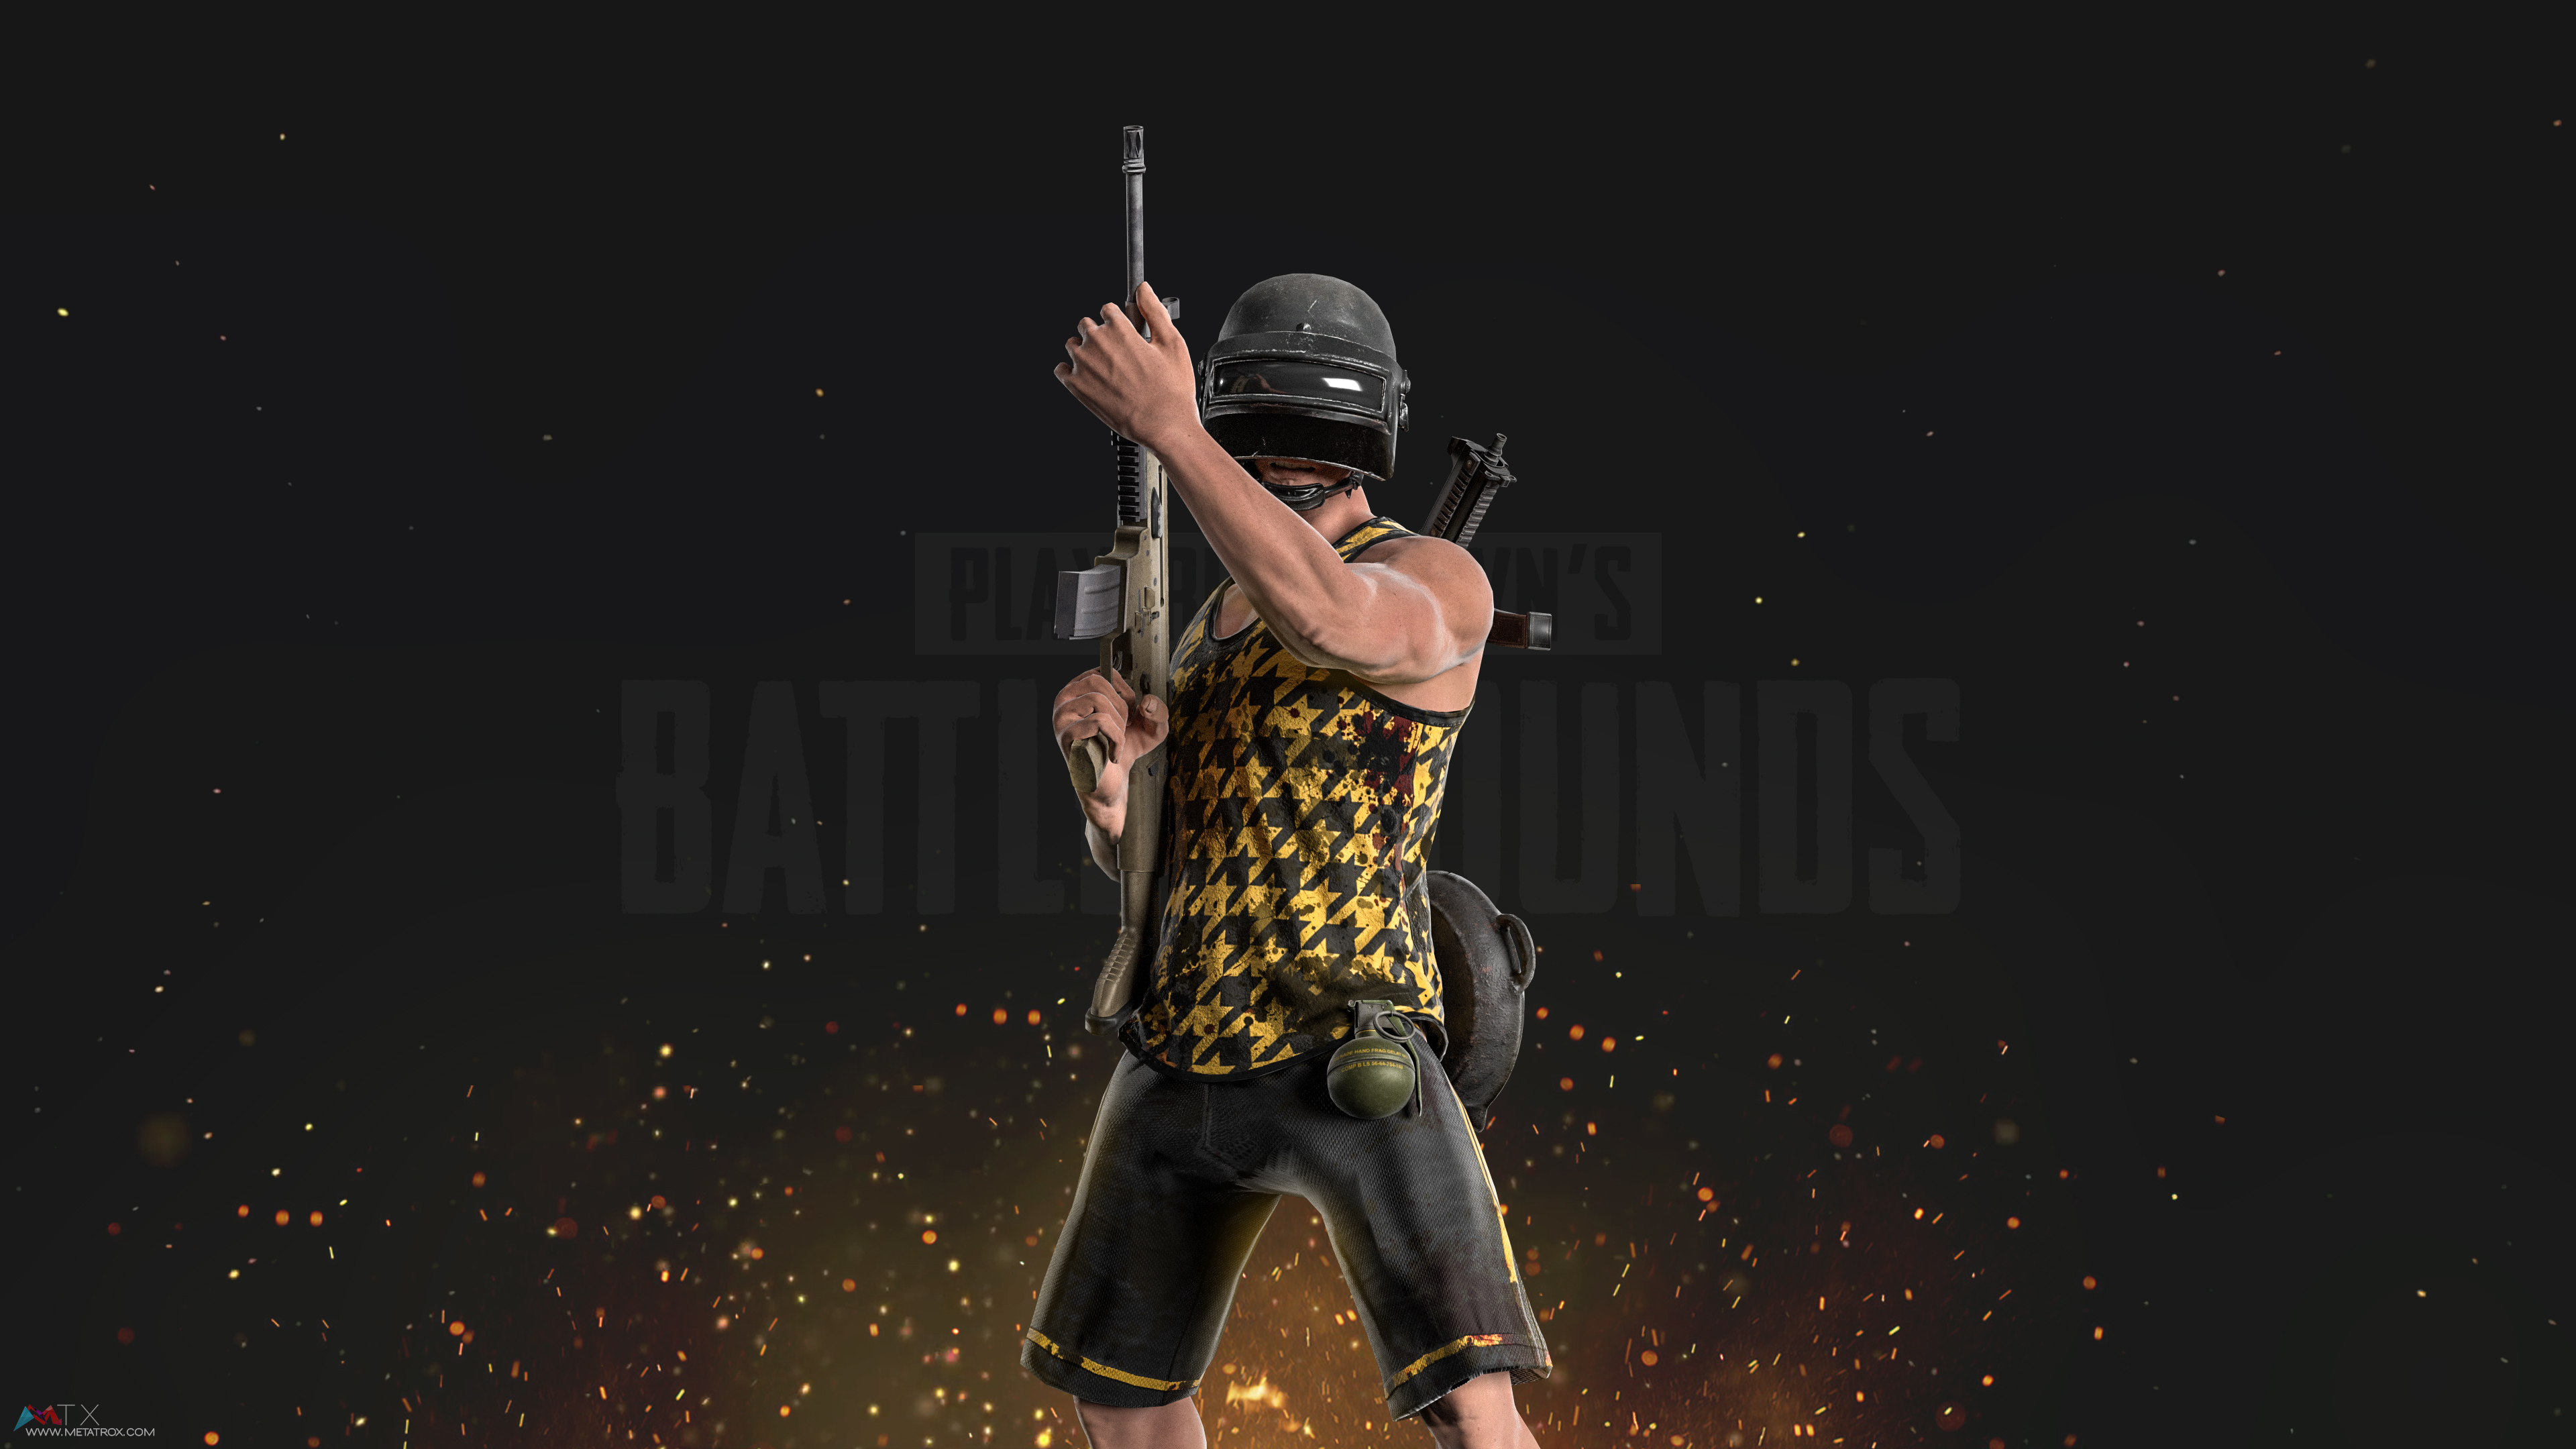 3840x2160 Pubg Game Helmet Guy 4k 4k Hd 4k Wallpapers: Pubg, HD Games, 4k Wallpapers, Images, Backgrounds, Photos